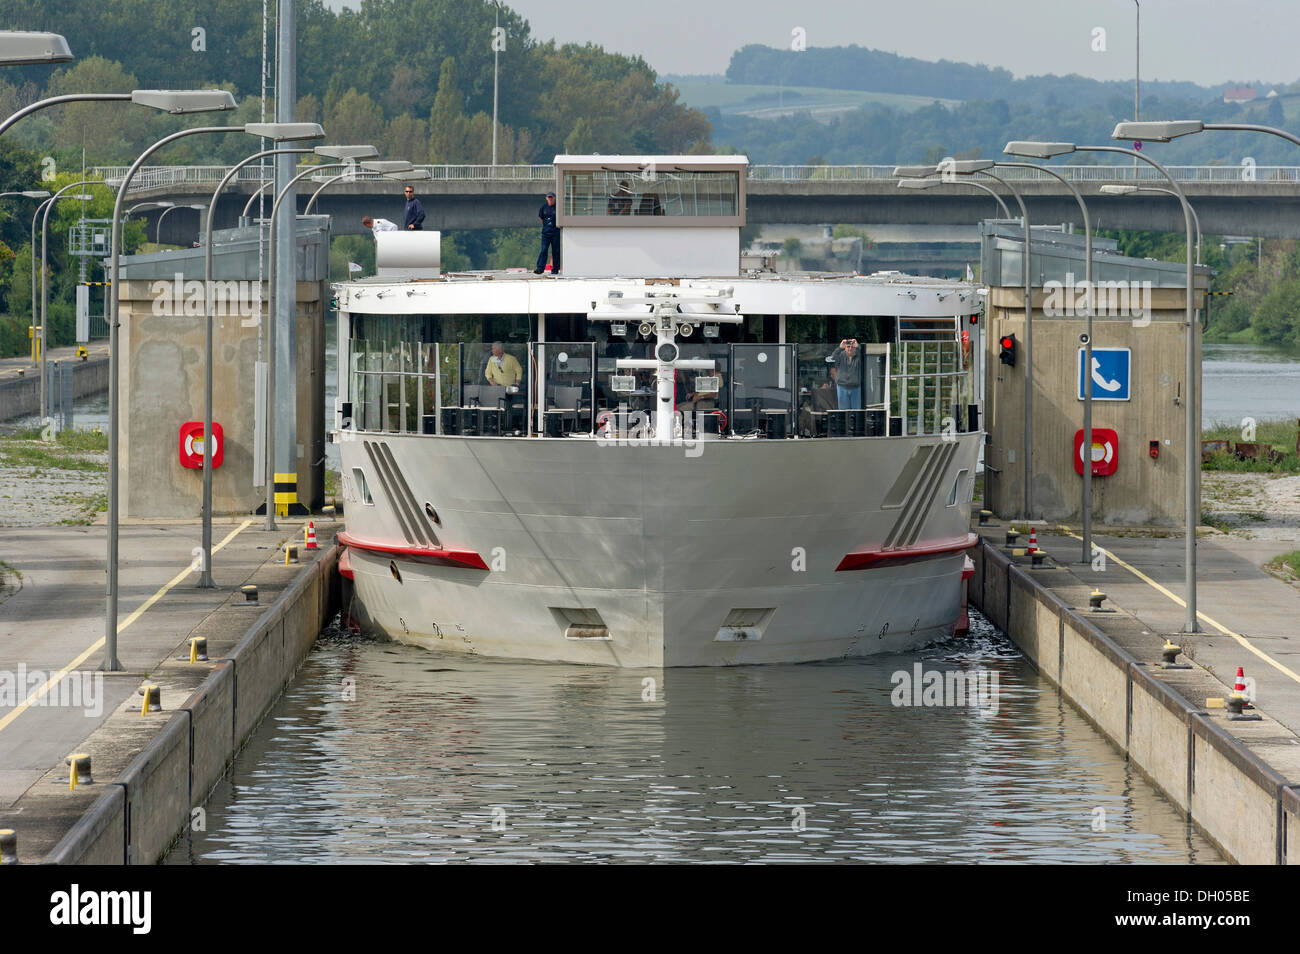 Thanks Canal cruise danube final, sorry